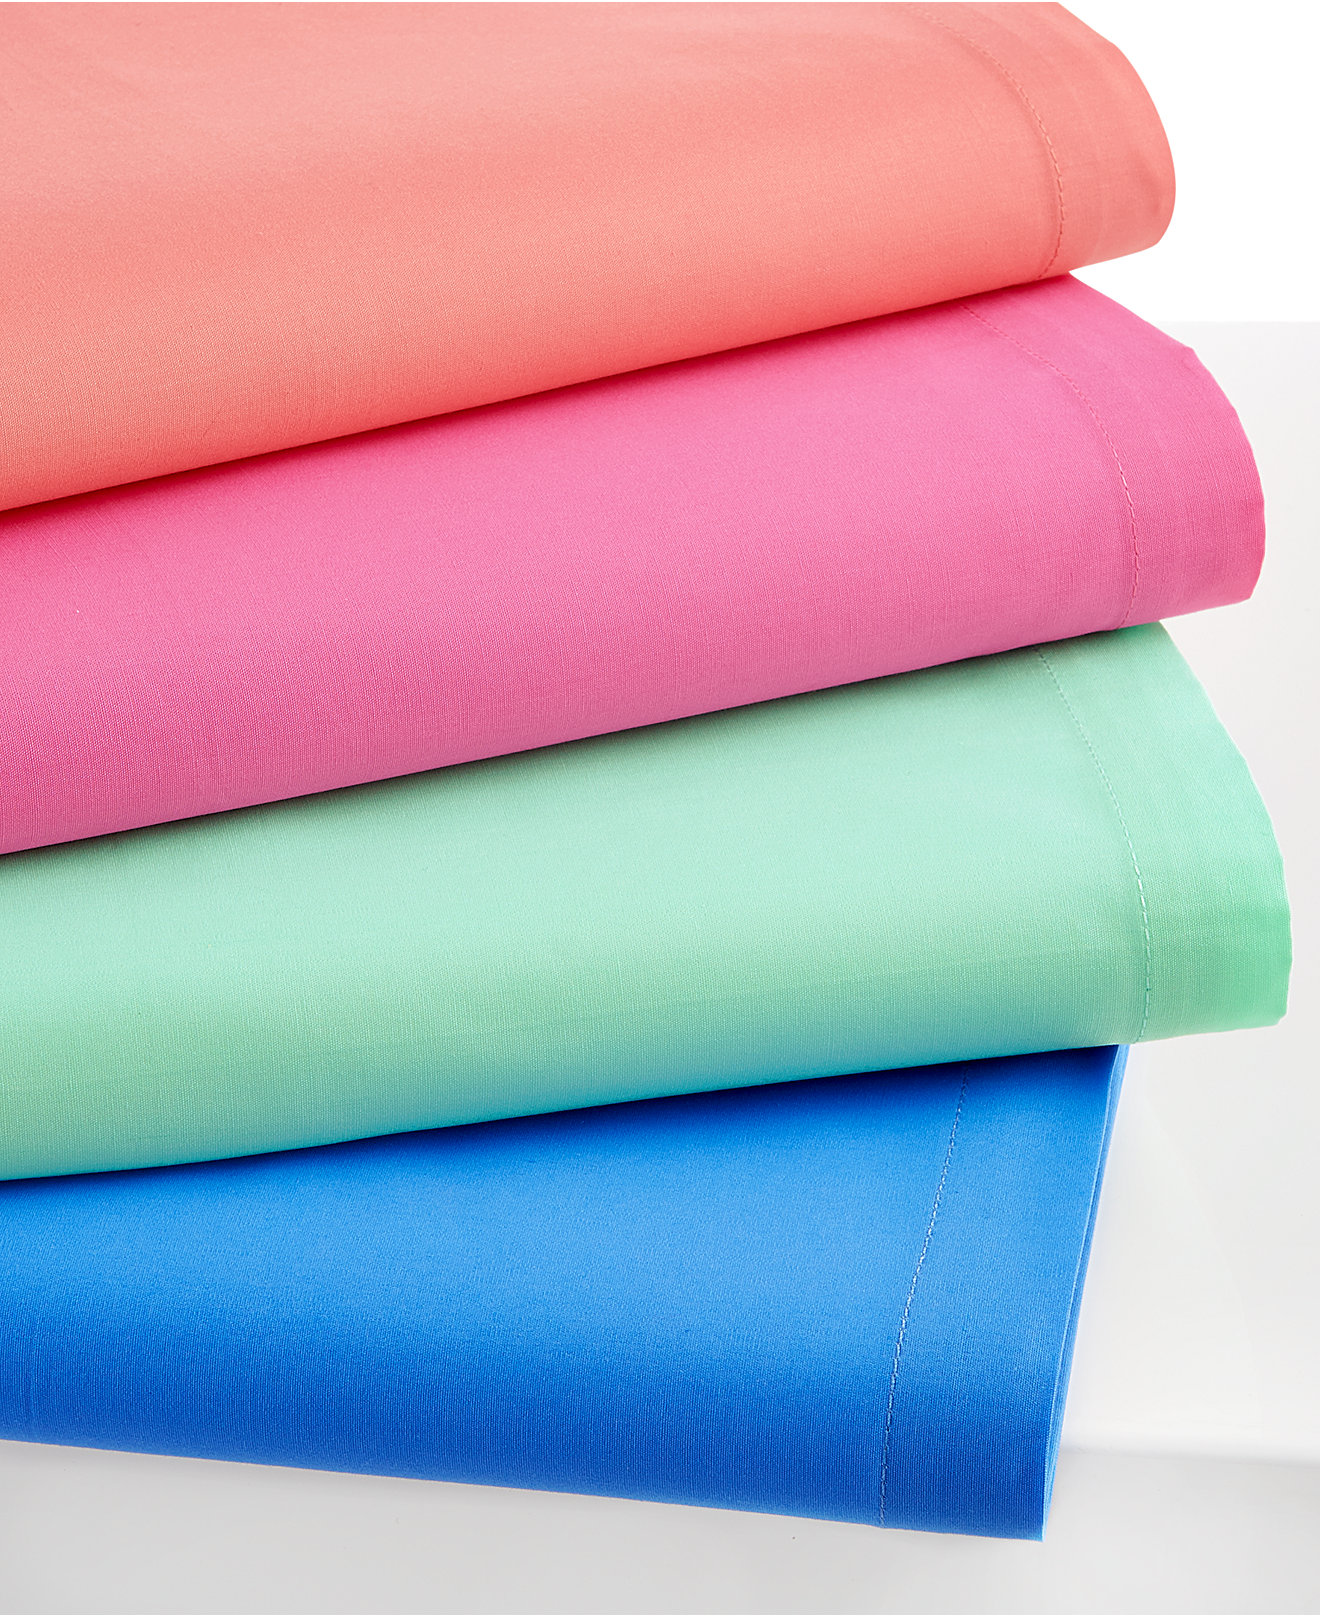 Astounding Cotton Percale Sheets With Amazing Combine Color Sheets Ideas